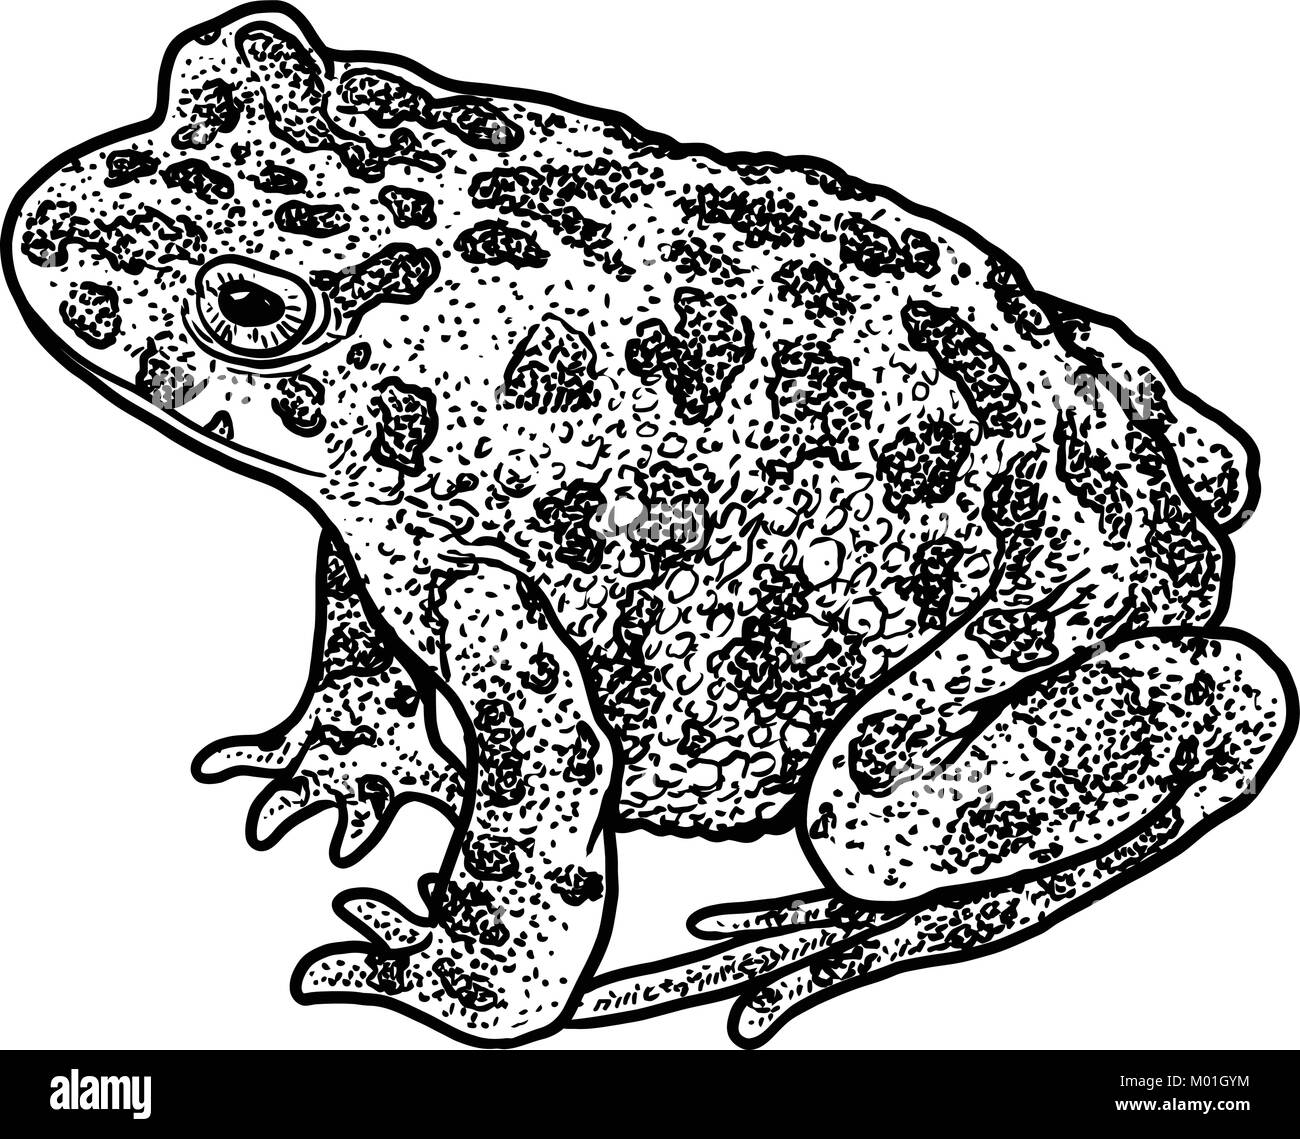 Drawing Red Lines With Green Ink : Amphibian black and white stock photos images alamy